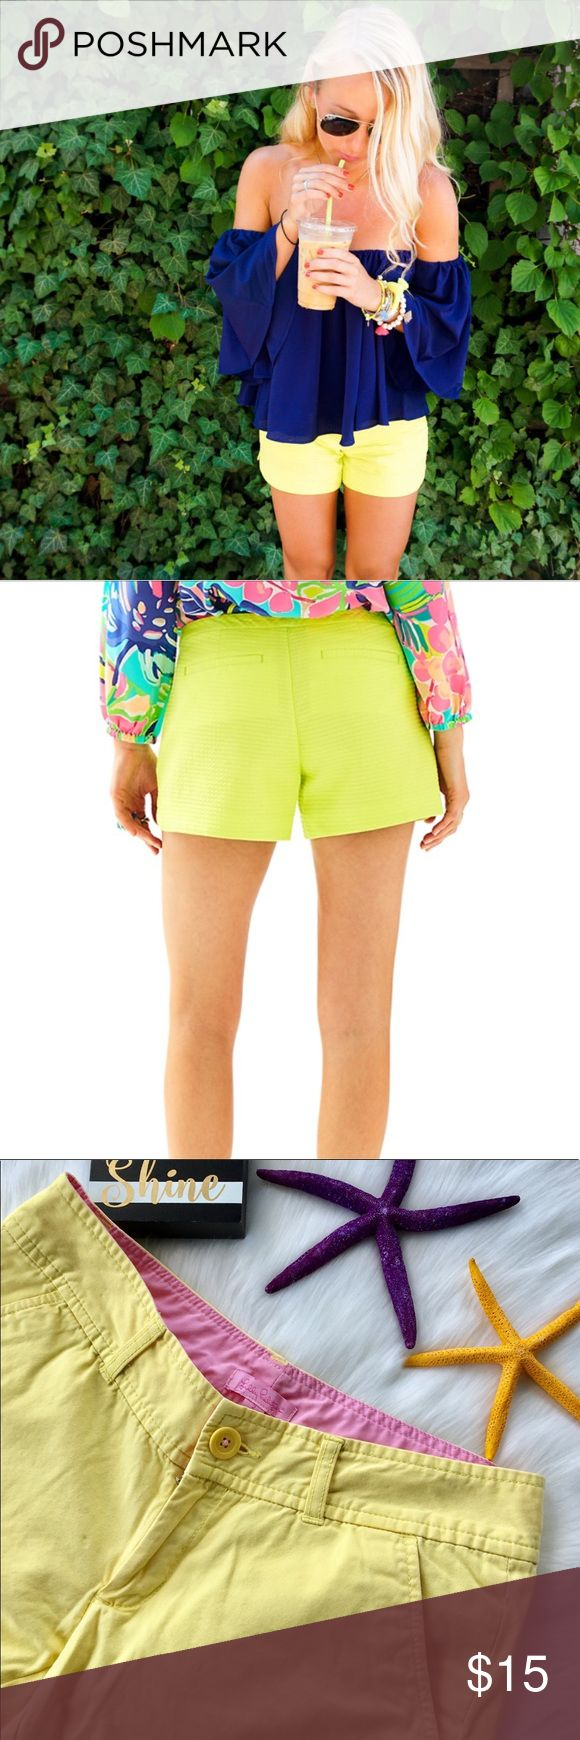 Lilly Pulitzer Yellow Shorts Size 2 Lilly Pulitzer Yellow Shorts will be your new favorite short to pair with your tops, tanks and tees. Women's Size 2 These pre loved shorts have slant pockets, belt loops and a front button and zipper to complete them.   Machine Wash Cold. Separately. 4 inch inseam Lilly Pulitzer Shorts